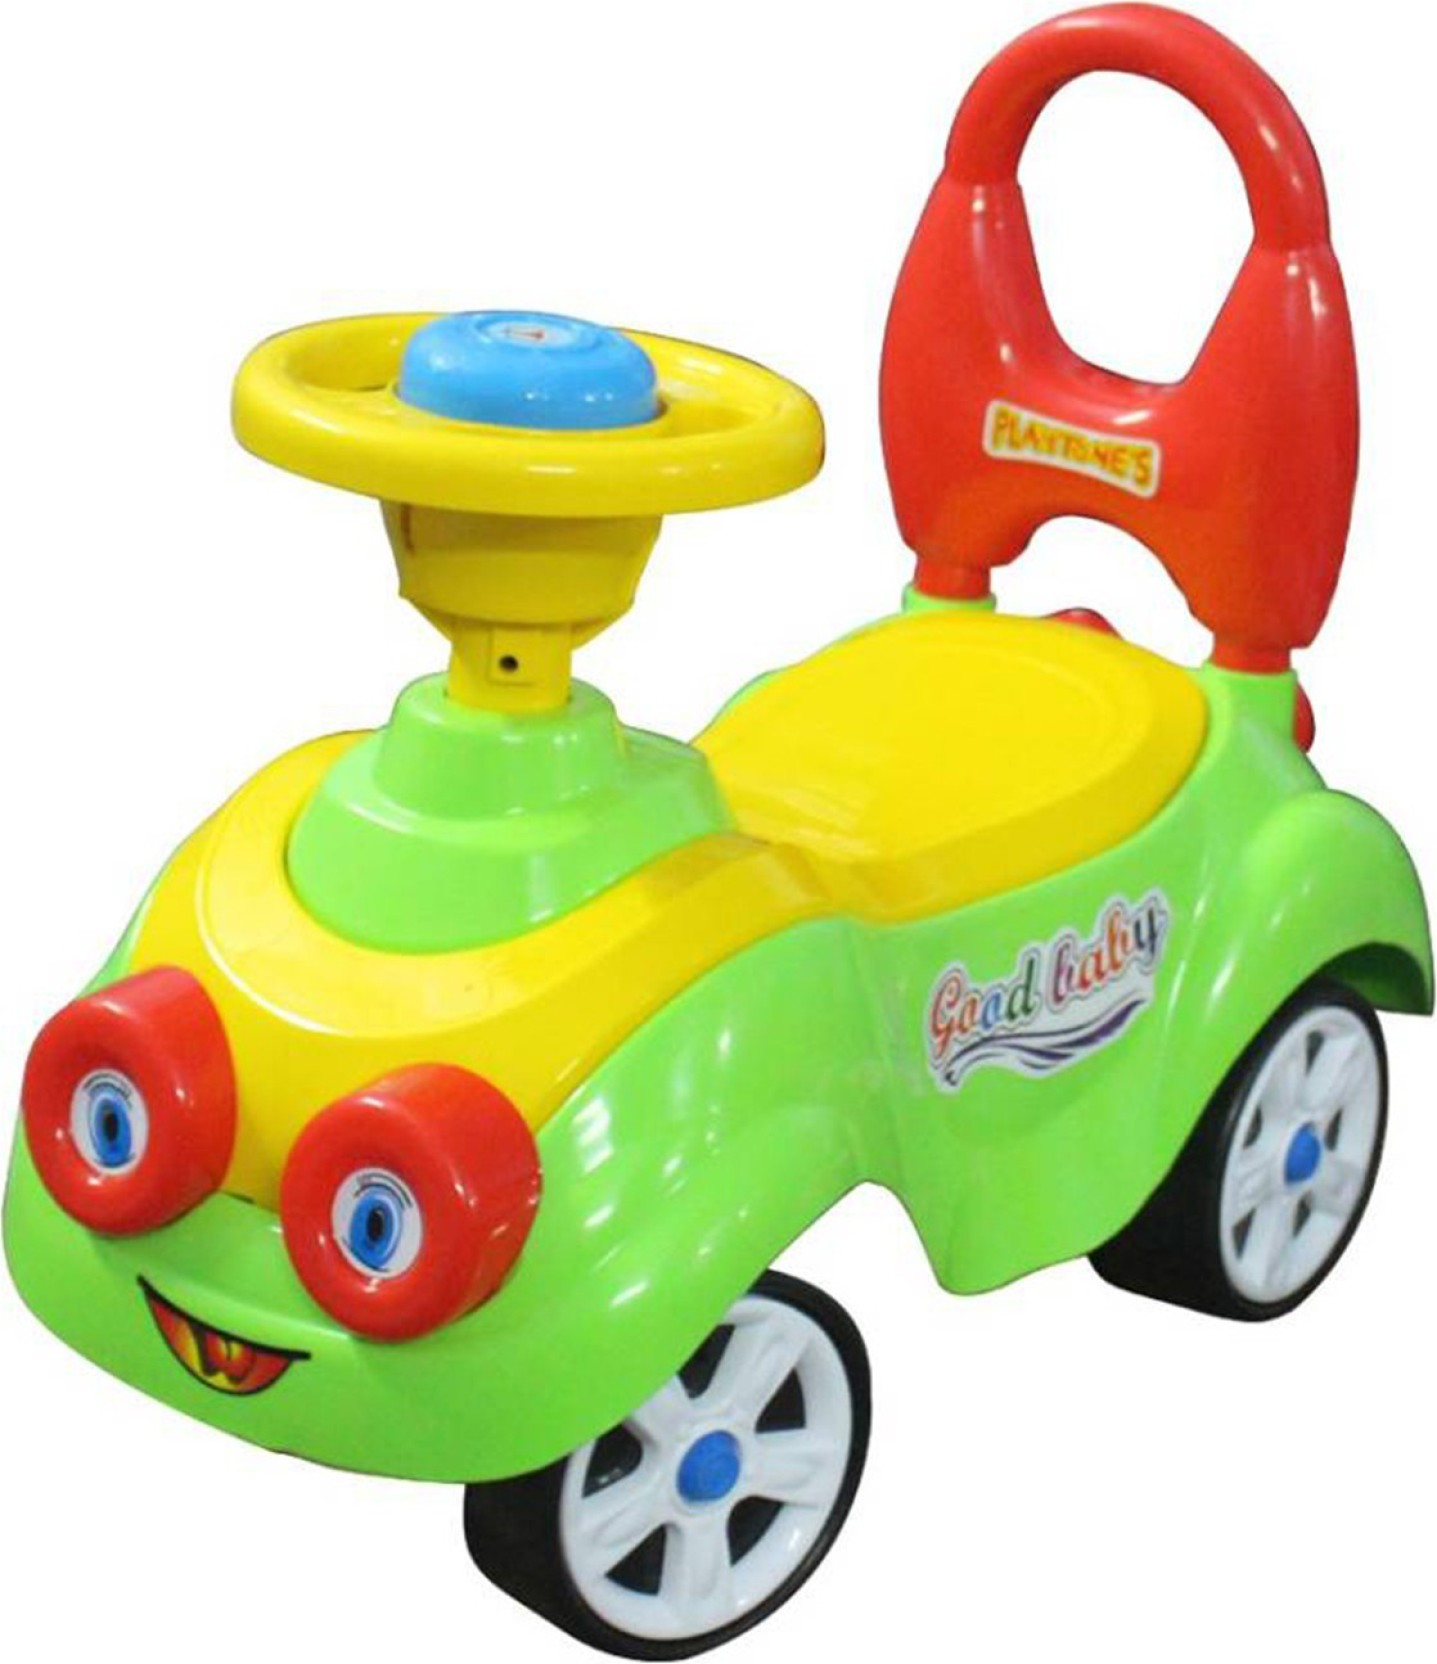 Akshat Good Baby Rider Ride on Good Baby Rider Ride on Buy